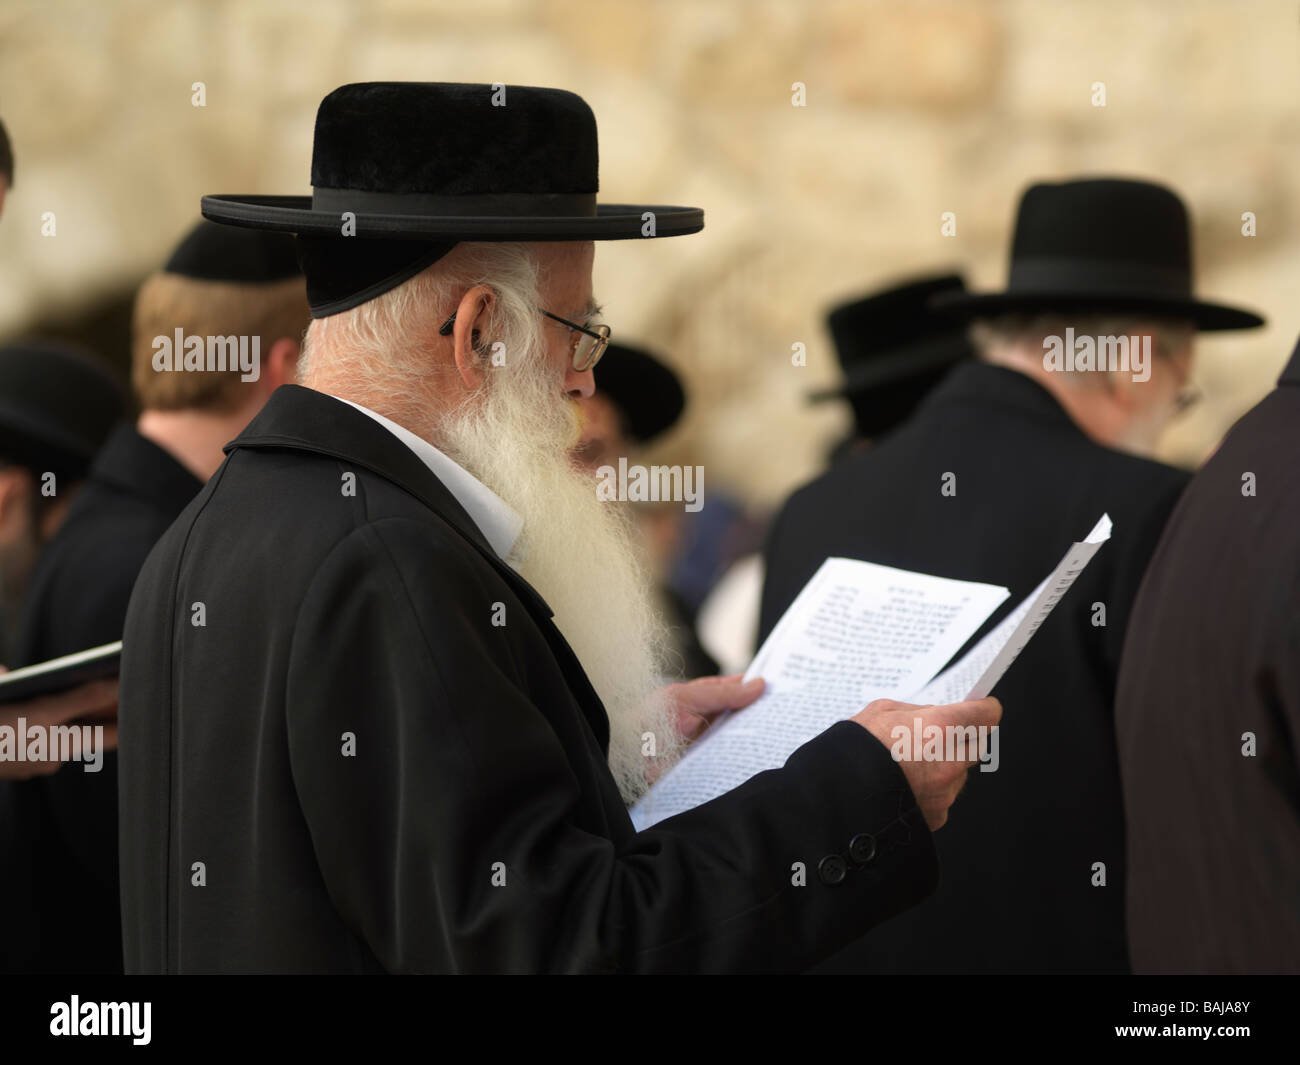 Israel Jerusalem Western Wall or Wailing Wall with worshipers - Stock Image